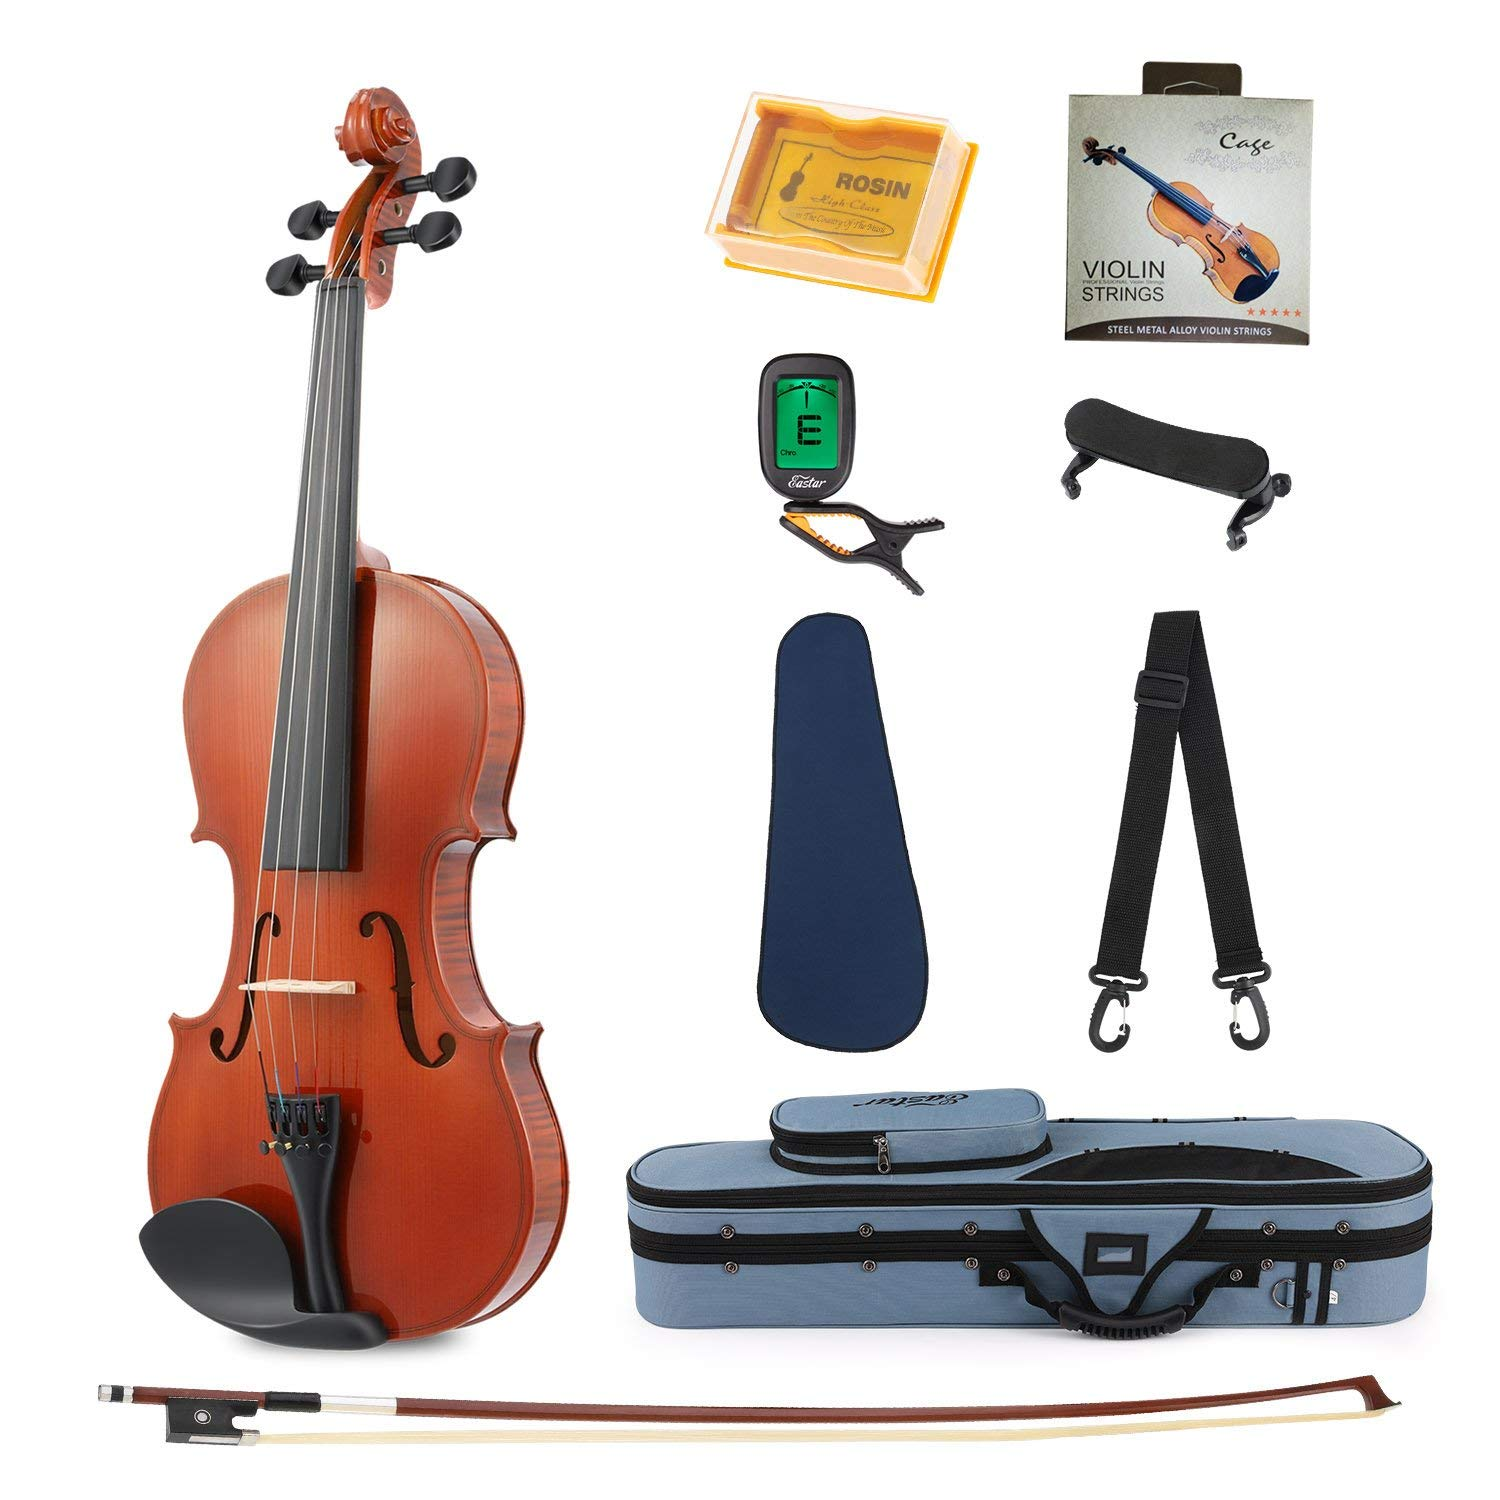 Eastar EVA-1 Full-Size 4/4 Violin Set For Beginner Student with Hard Case, Rosin, Shoulder Rest, Bow, Clip-on Tuner and Extra Strings by Eastar